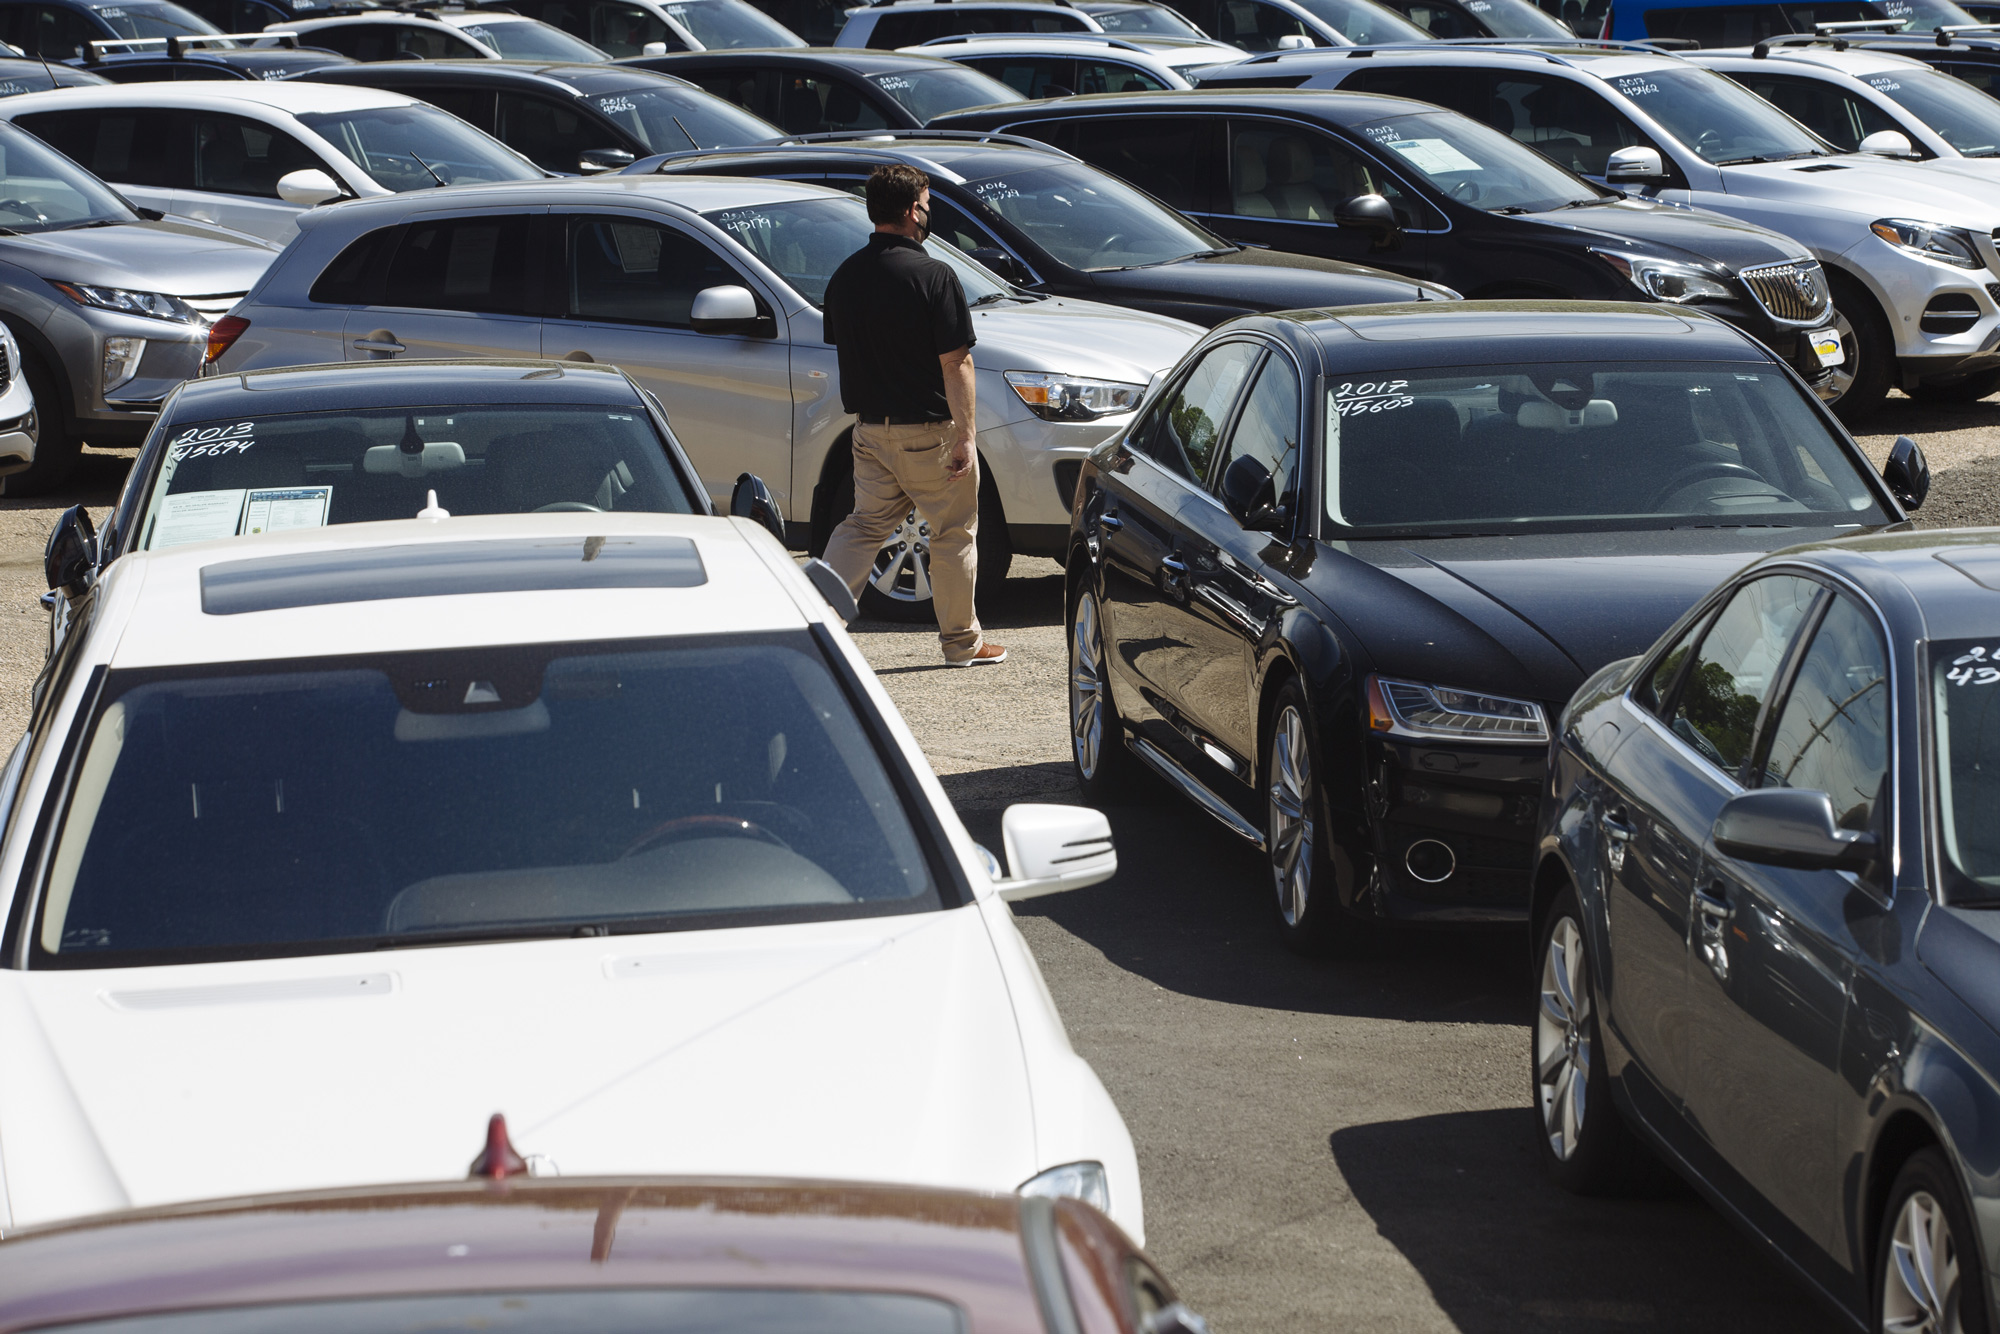 A car dealer walks past cars for sale at a used car dealership in Jersey City, New Jersey, on May 20.